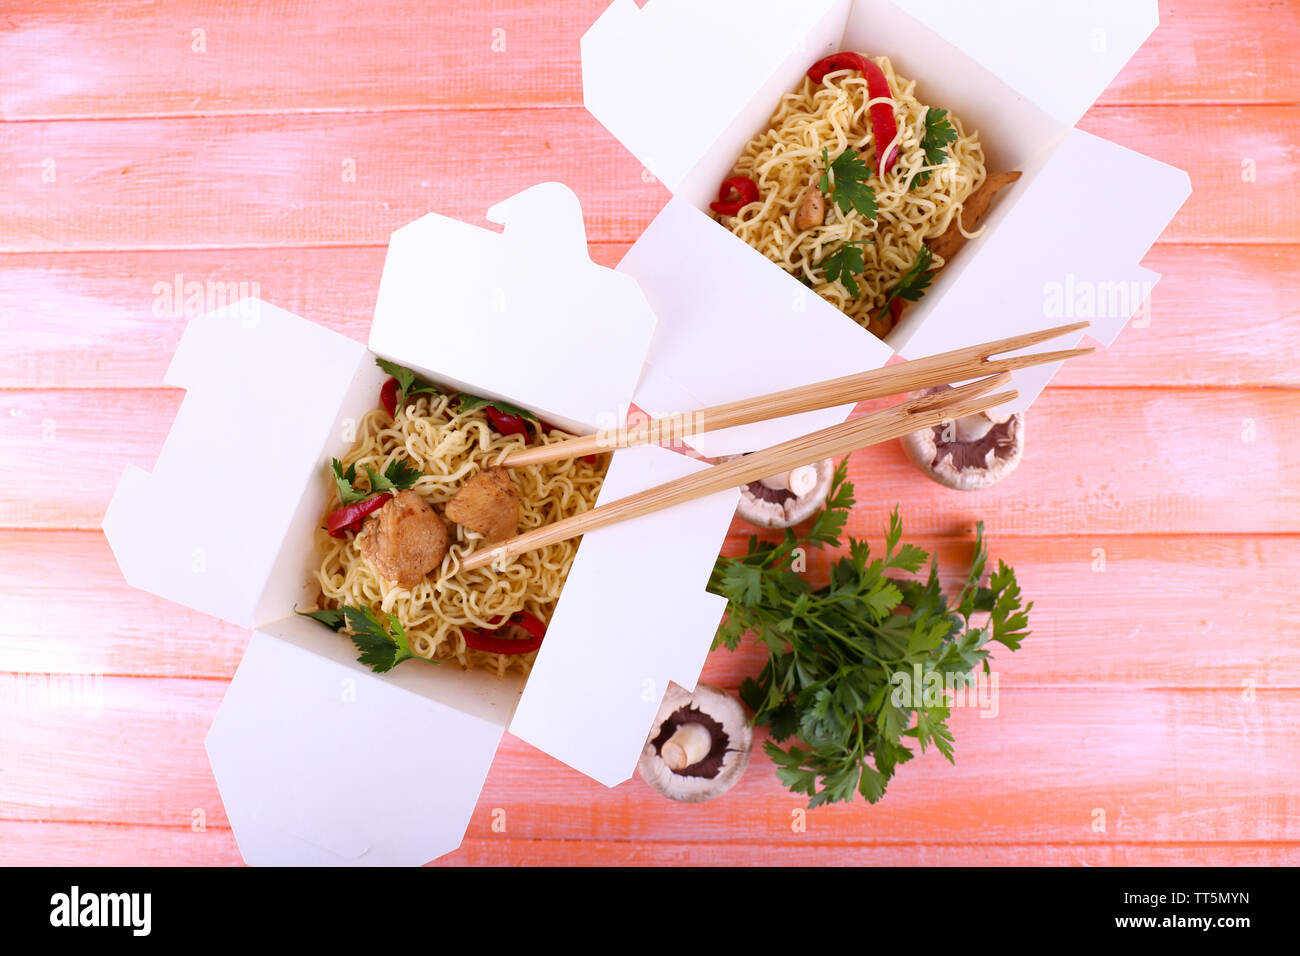 Chinese noodles with meat and pepper in takeaway boxes on pink background - Stock Image